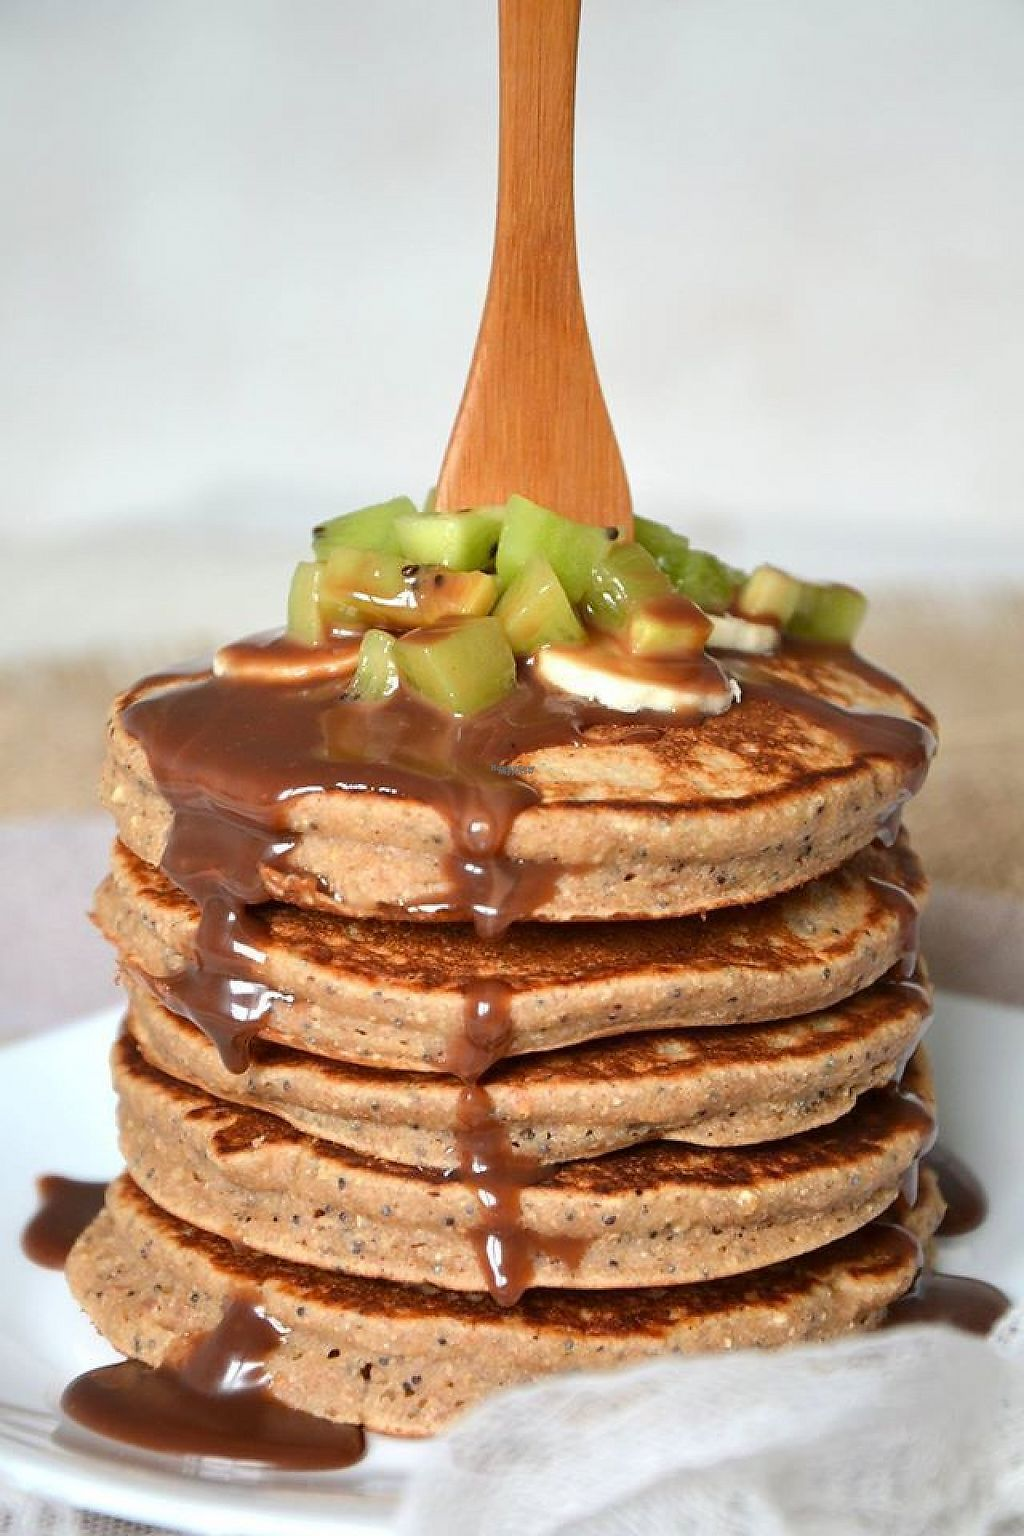 "Photo of La Vie Claire  by <a href=""/members/profile/community"">community</a> <br/>vegan pancakes  <br/> February 4, 2017  - <a href='/contact/abuse/image/72022/221874'>Report</a>"